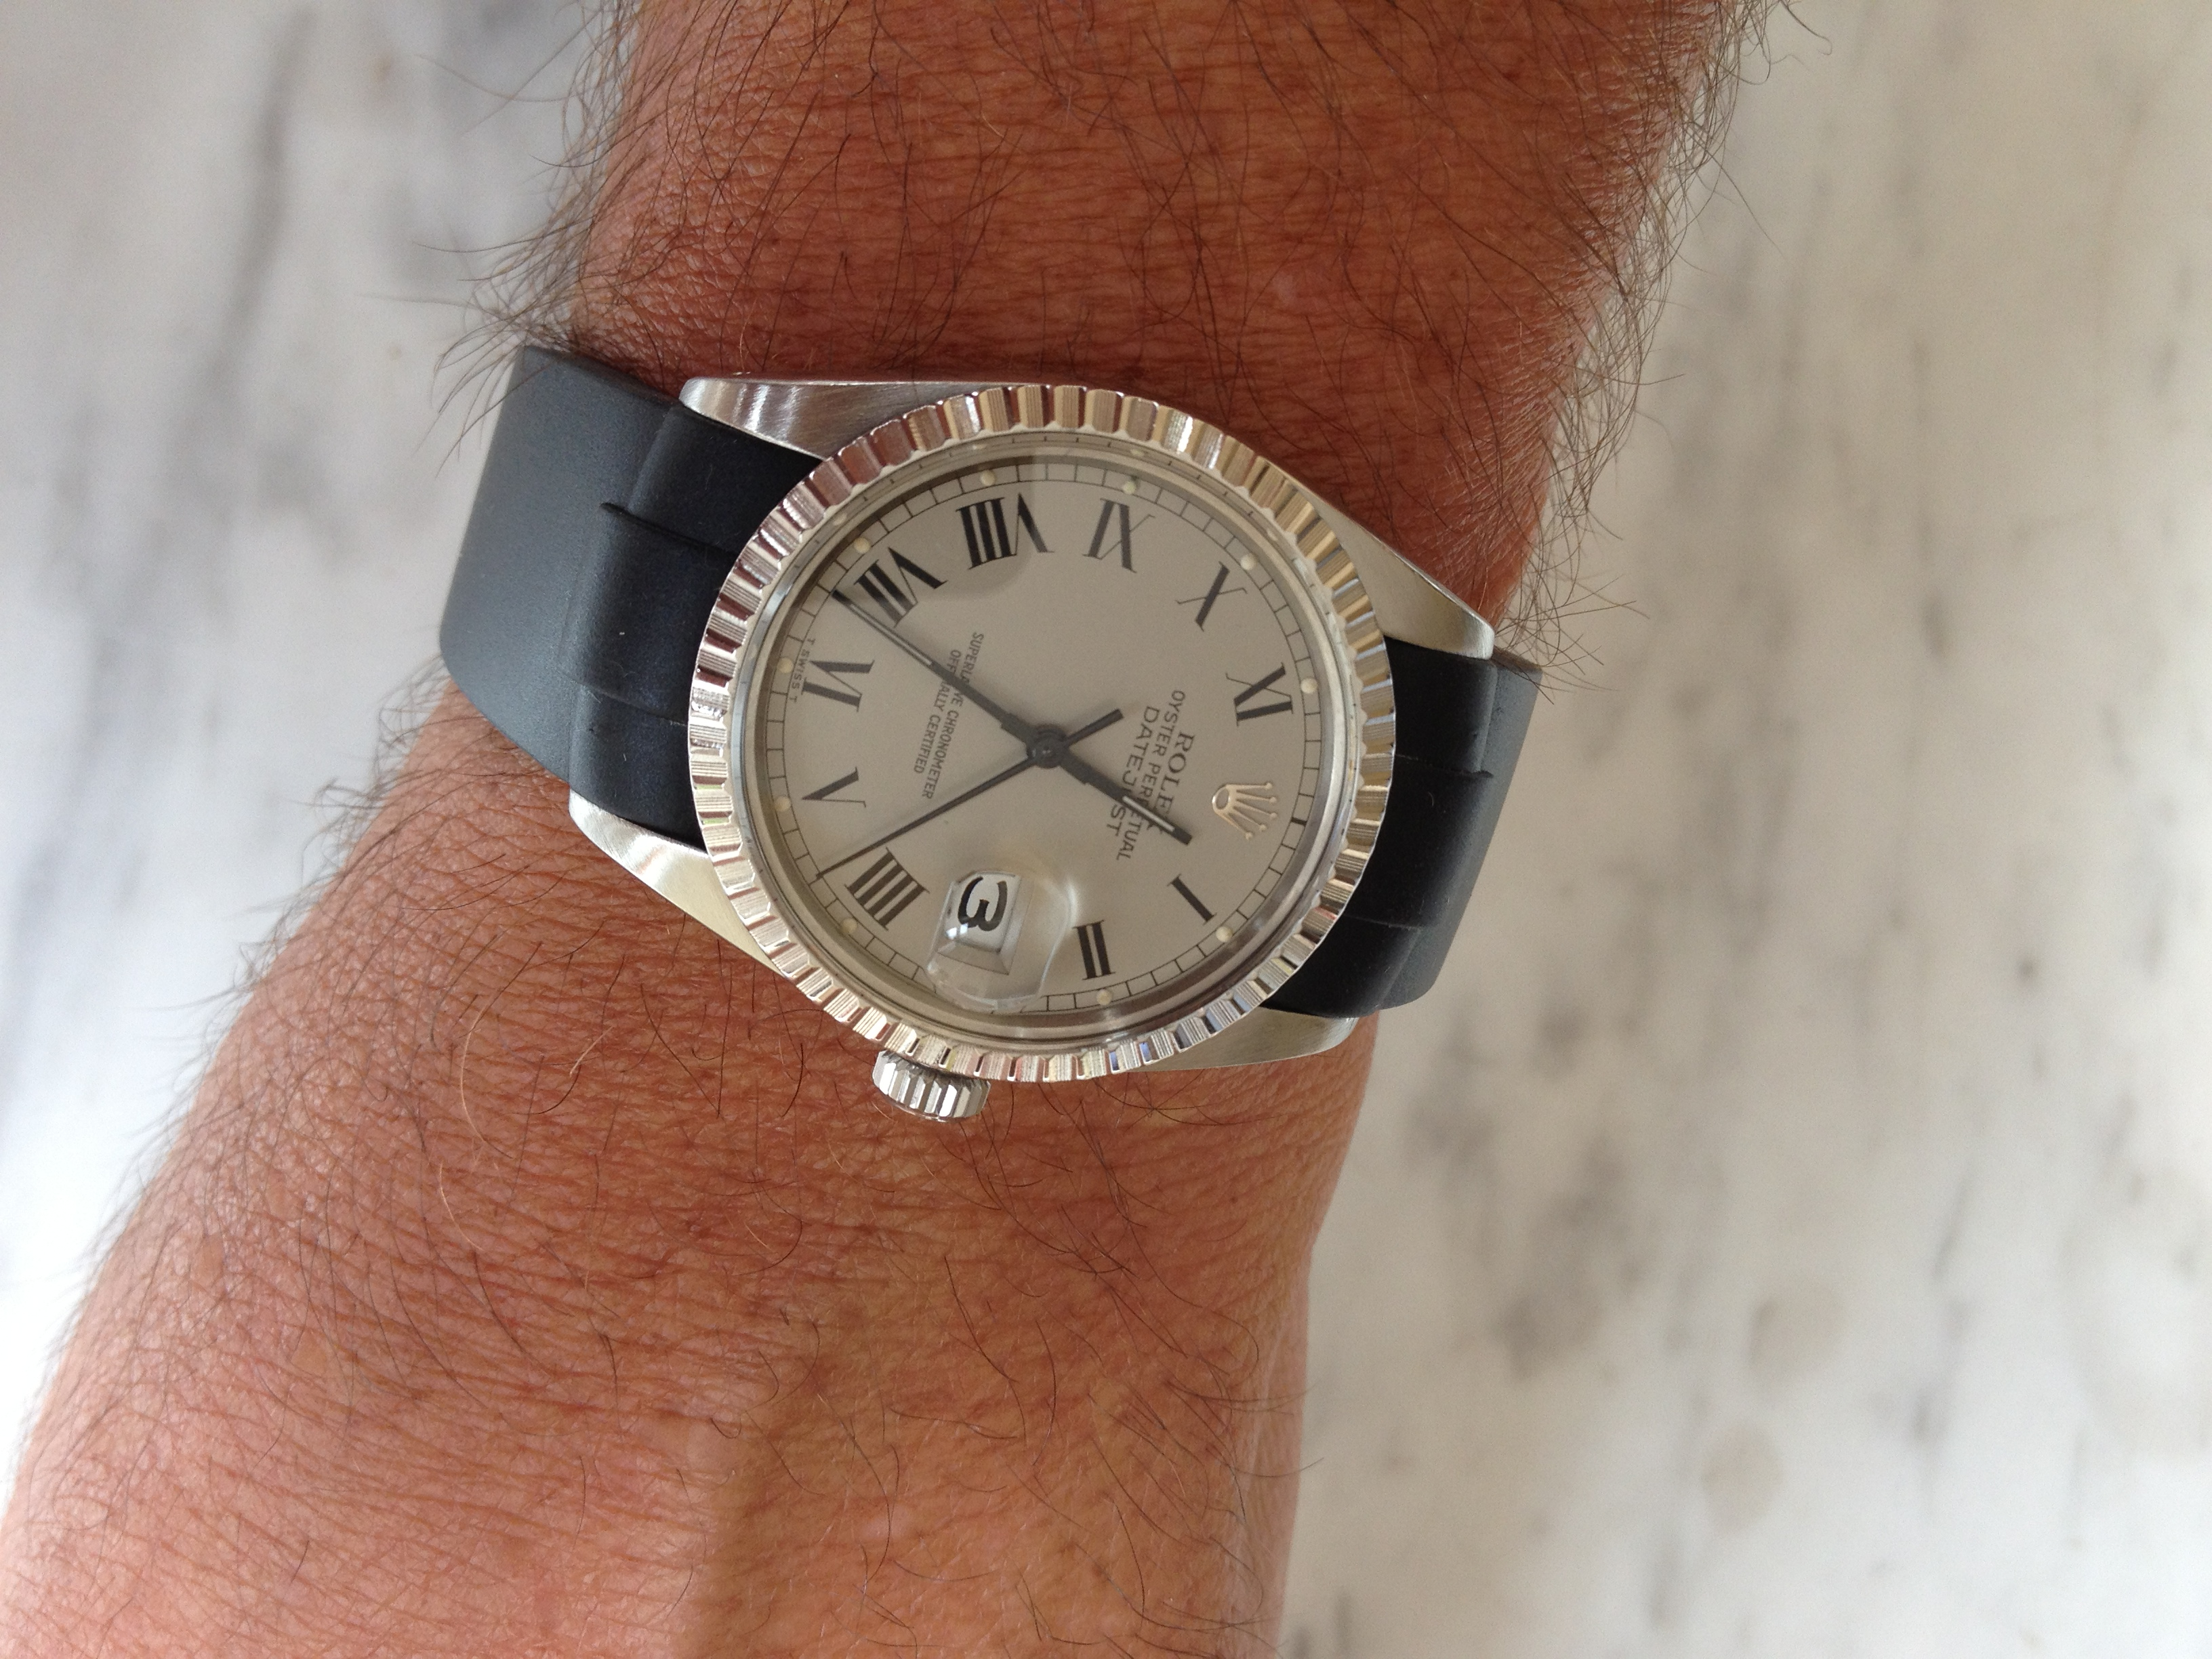 Rolex Datejust Ii Leather Strap